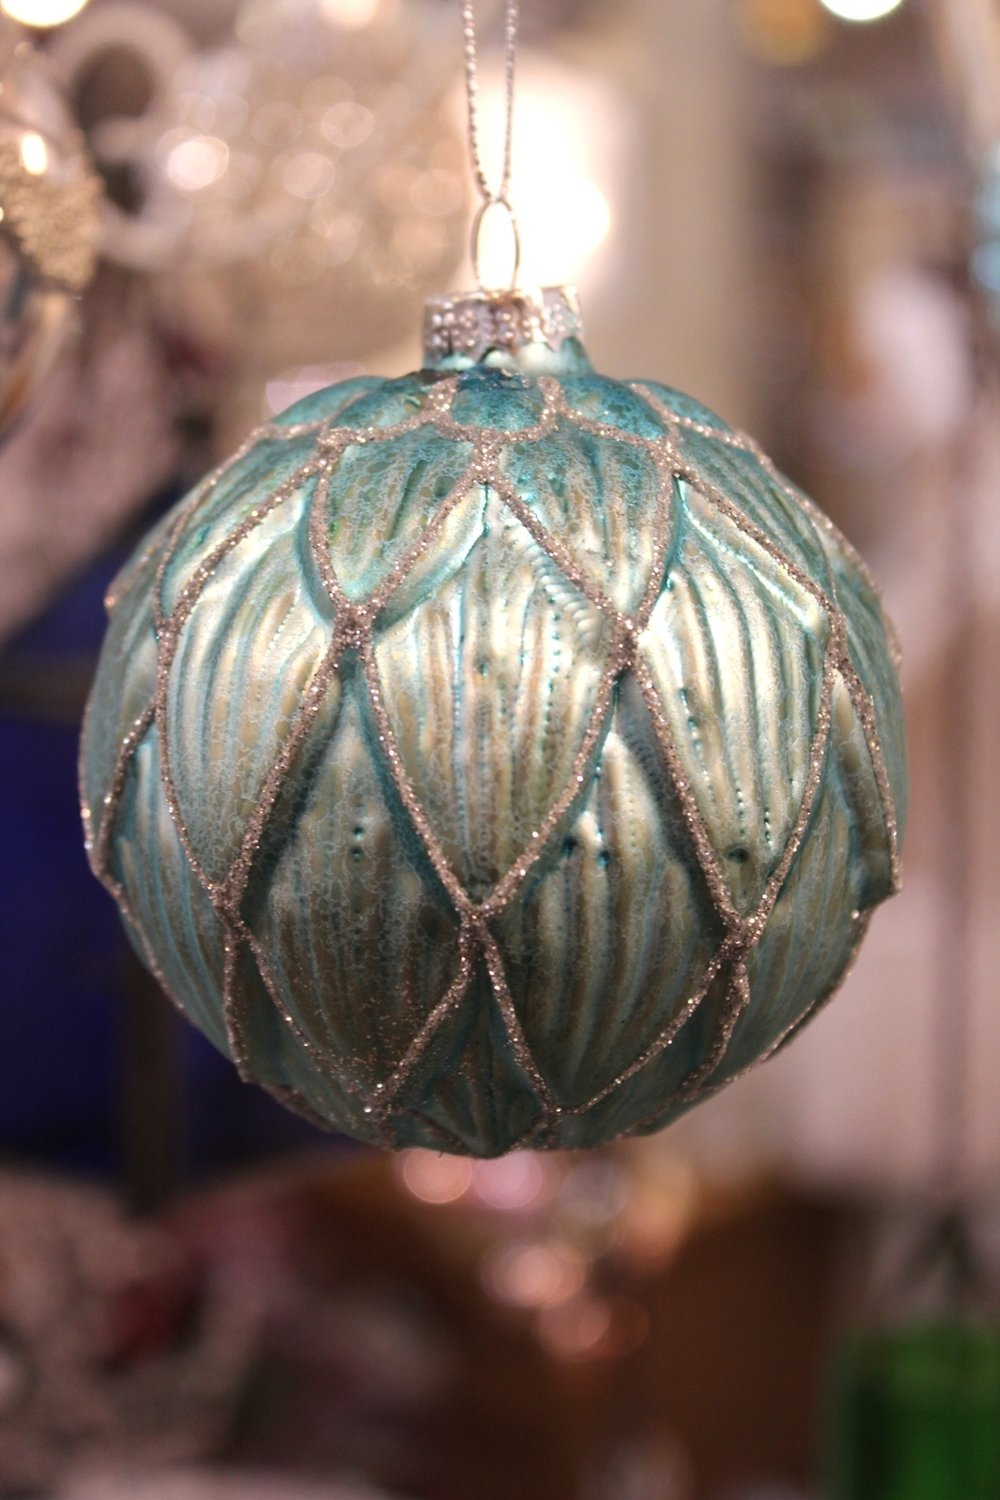 Aquamarine & Silver Sparkle Bauble - €5.90